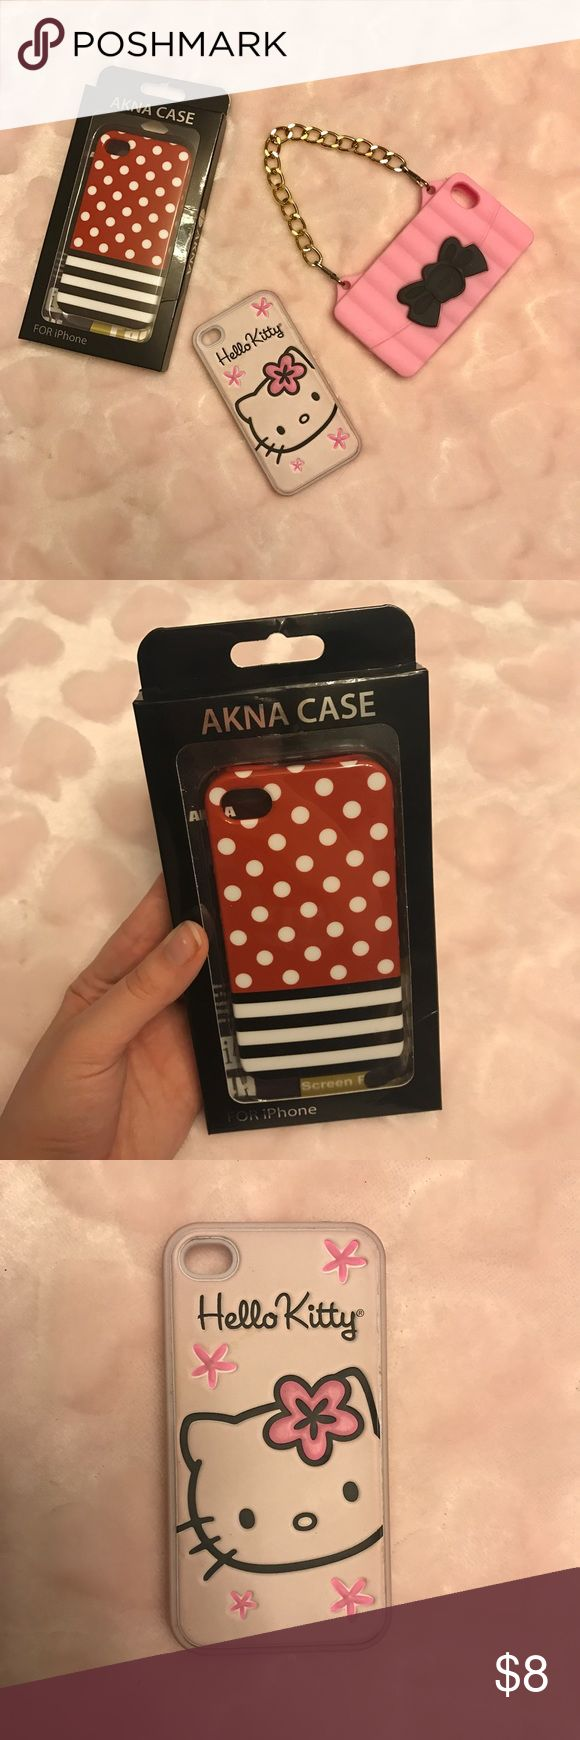 Three iPhone 4/4s Phone Cases Three phone cases, red and white polka dots with black and white stripes, pink rubber case with a bow and chain, and a hello kitty case. I am also including hello kitty home button stickers. Super cute! Hello Kitty Accessories Phone Cases